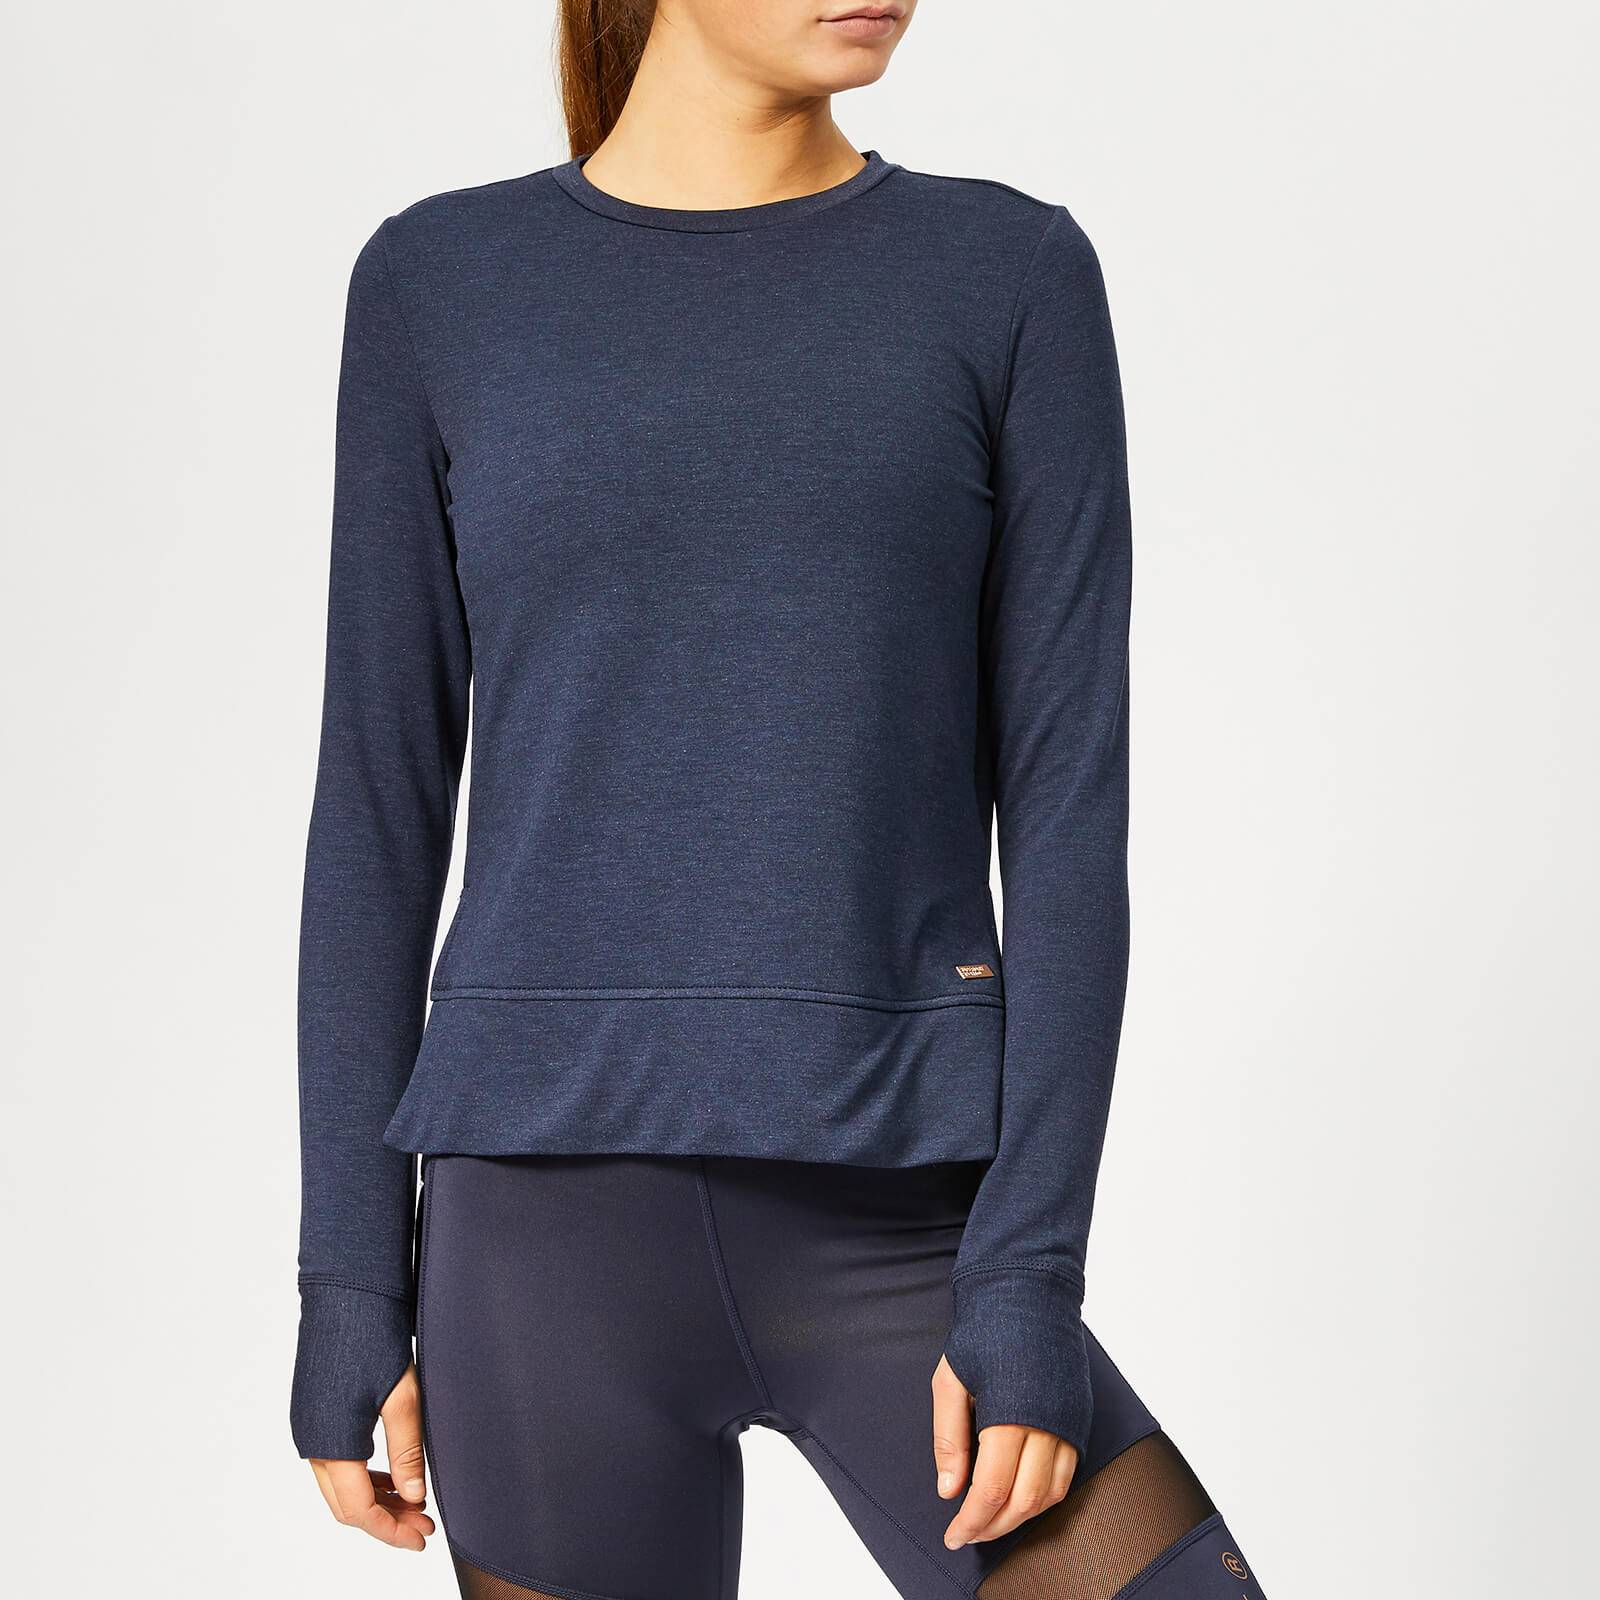 Superdry Sport Women's Active Mesh Studio Luxe Crew Neck Sweatshirt - Eclispe Navy Marl - M - Blue